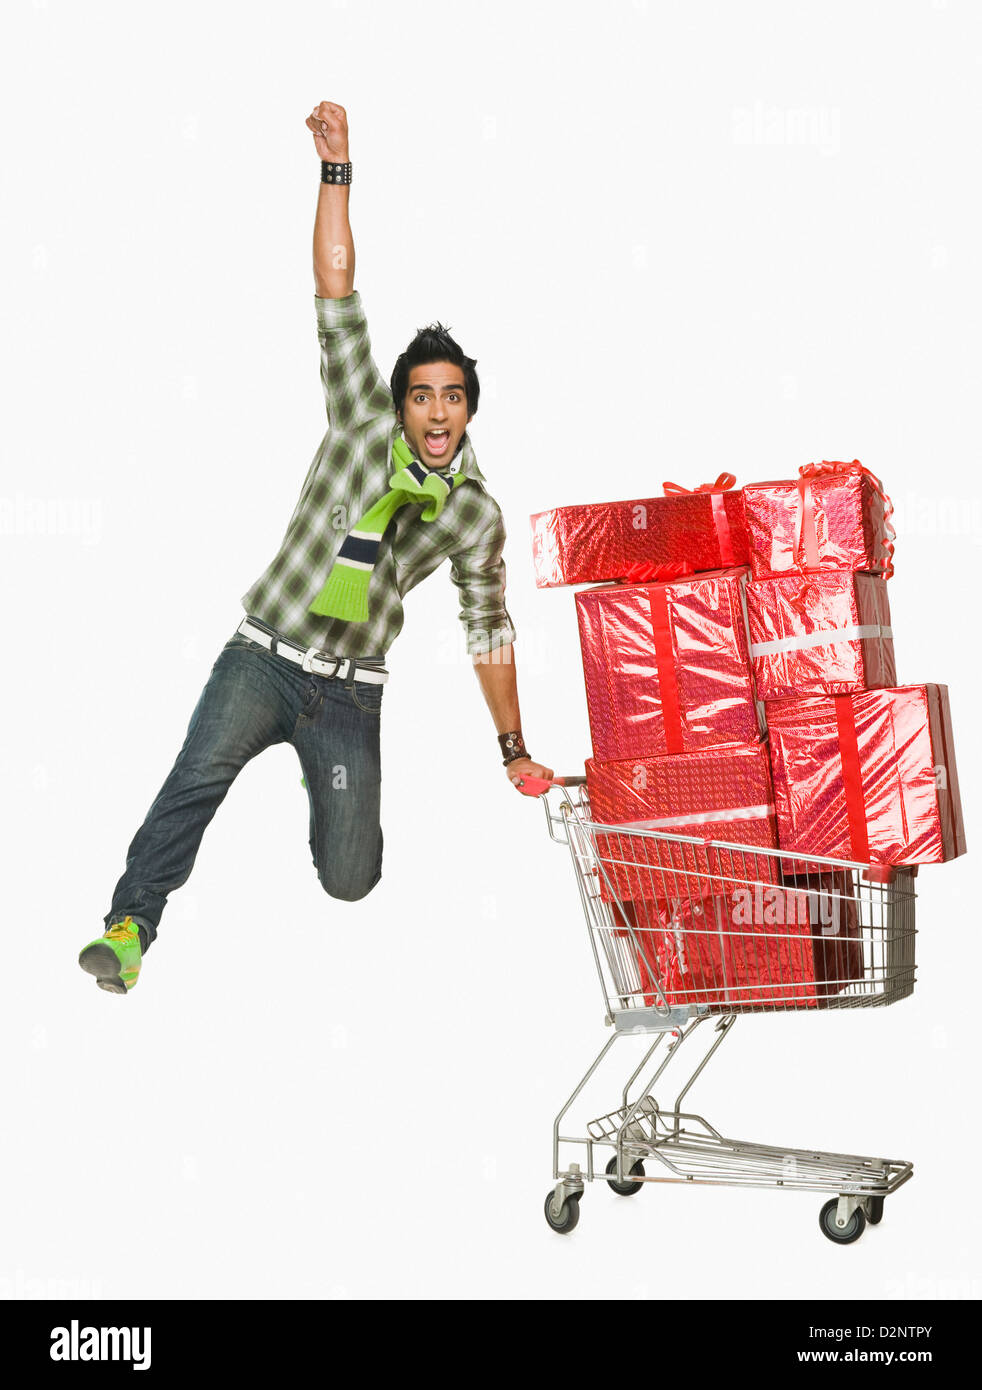 Man leaning against a shopping cart filled with gifts and cheering - Stock Image